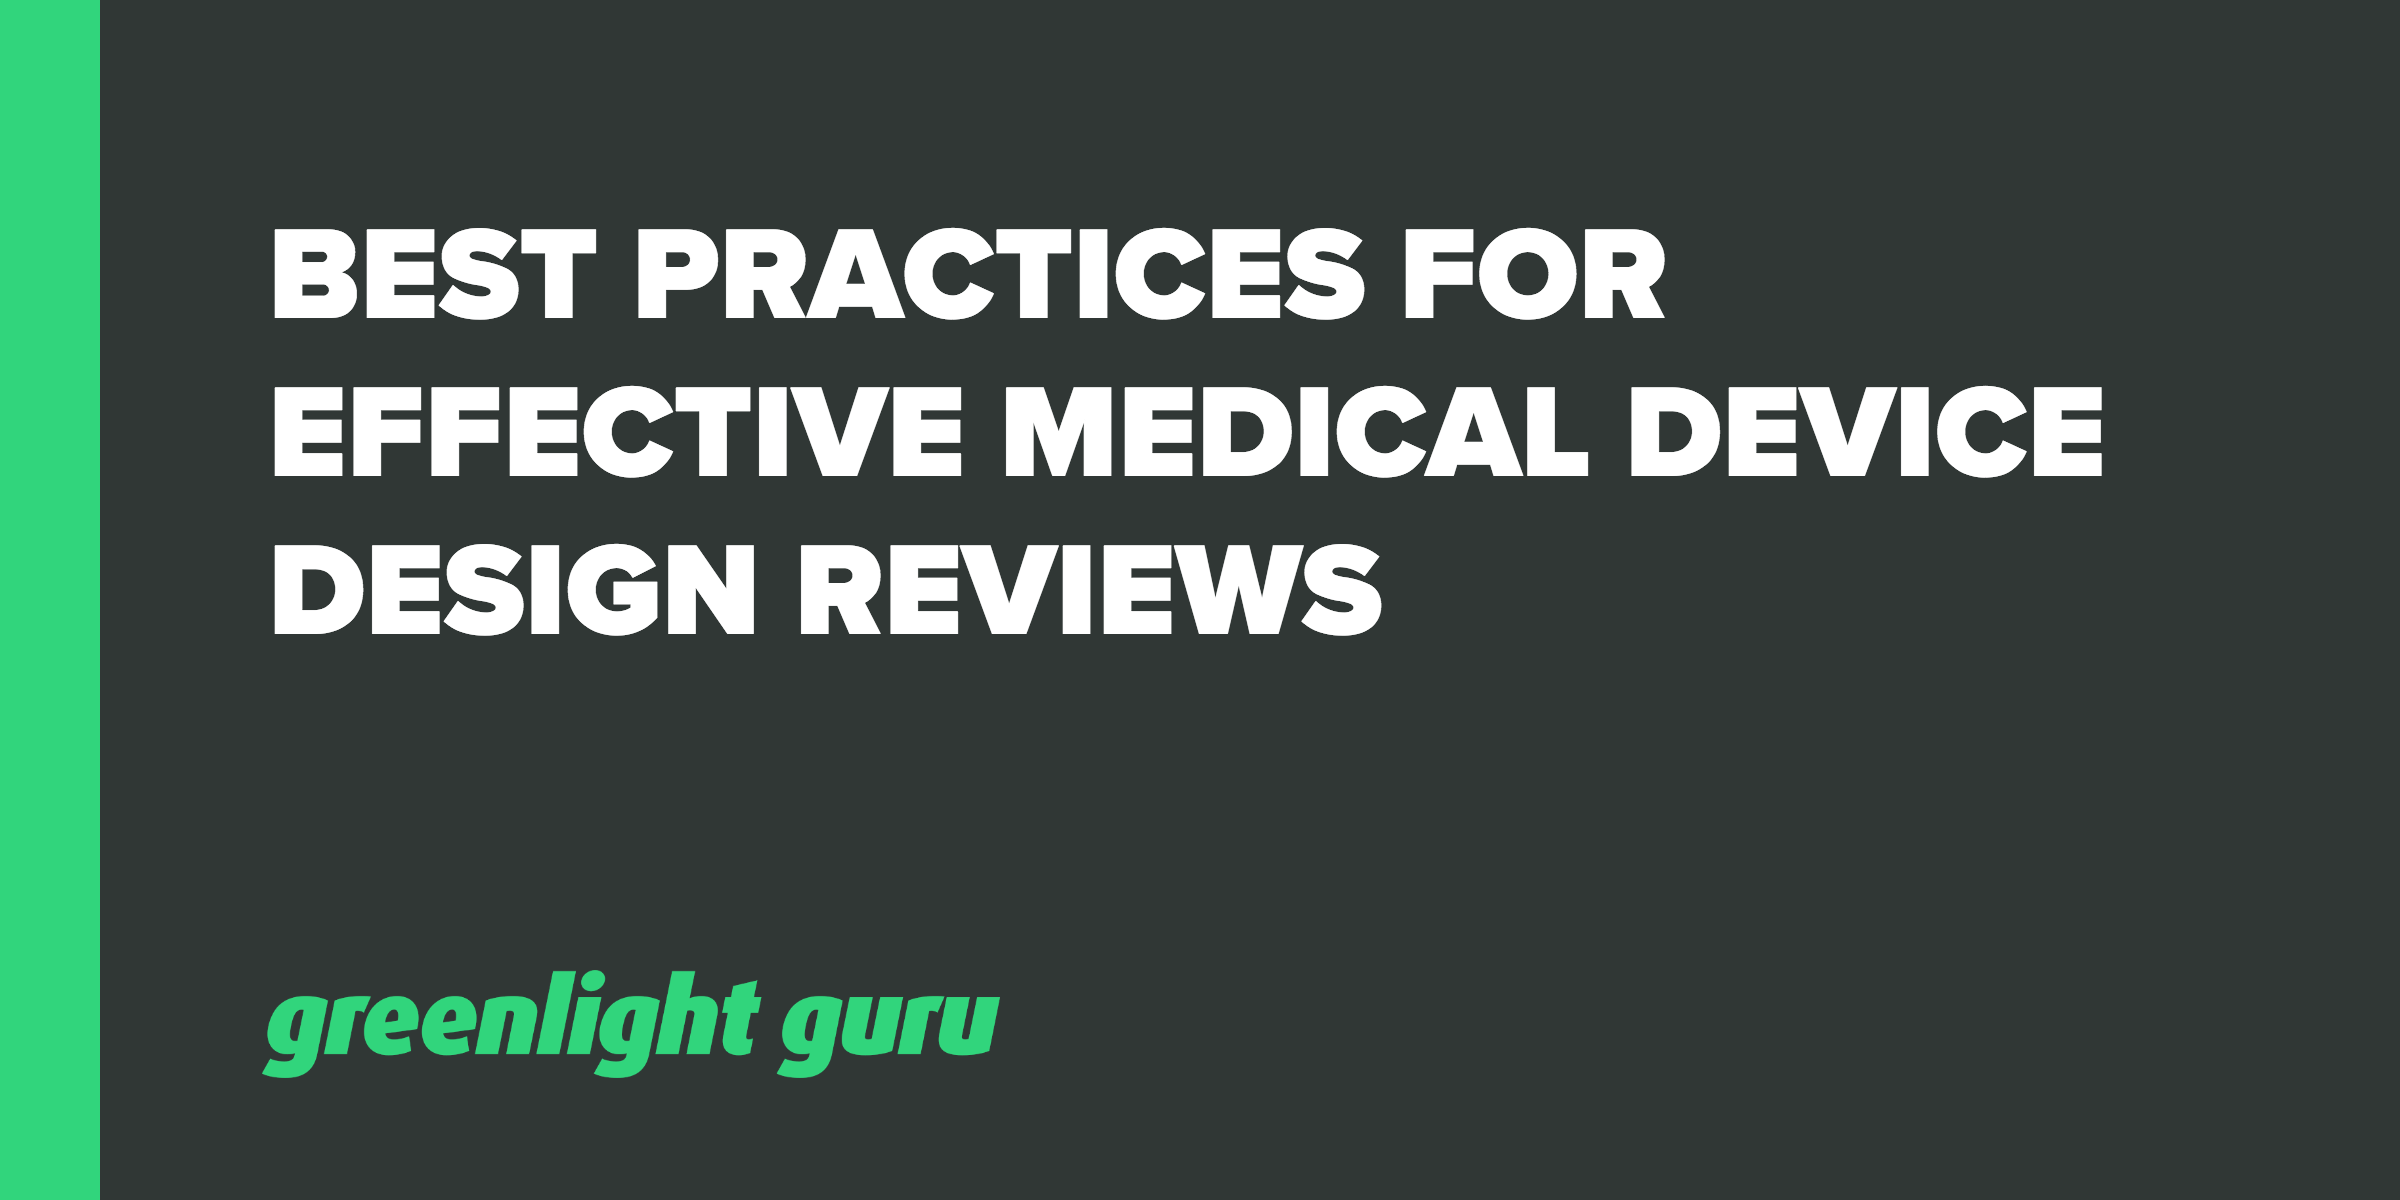 best-practices-design-reviews